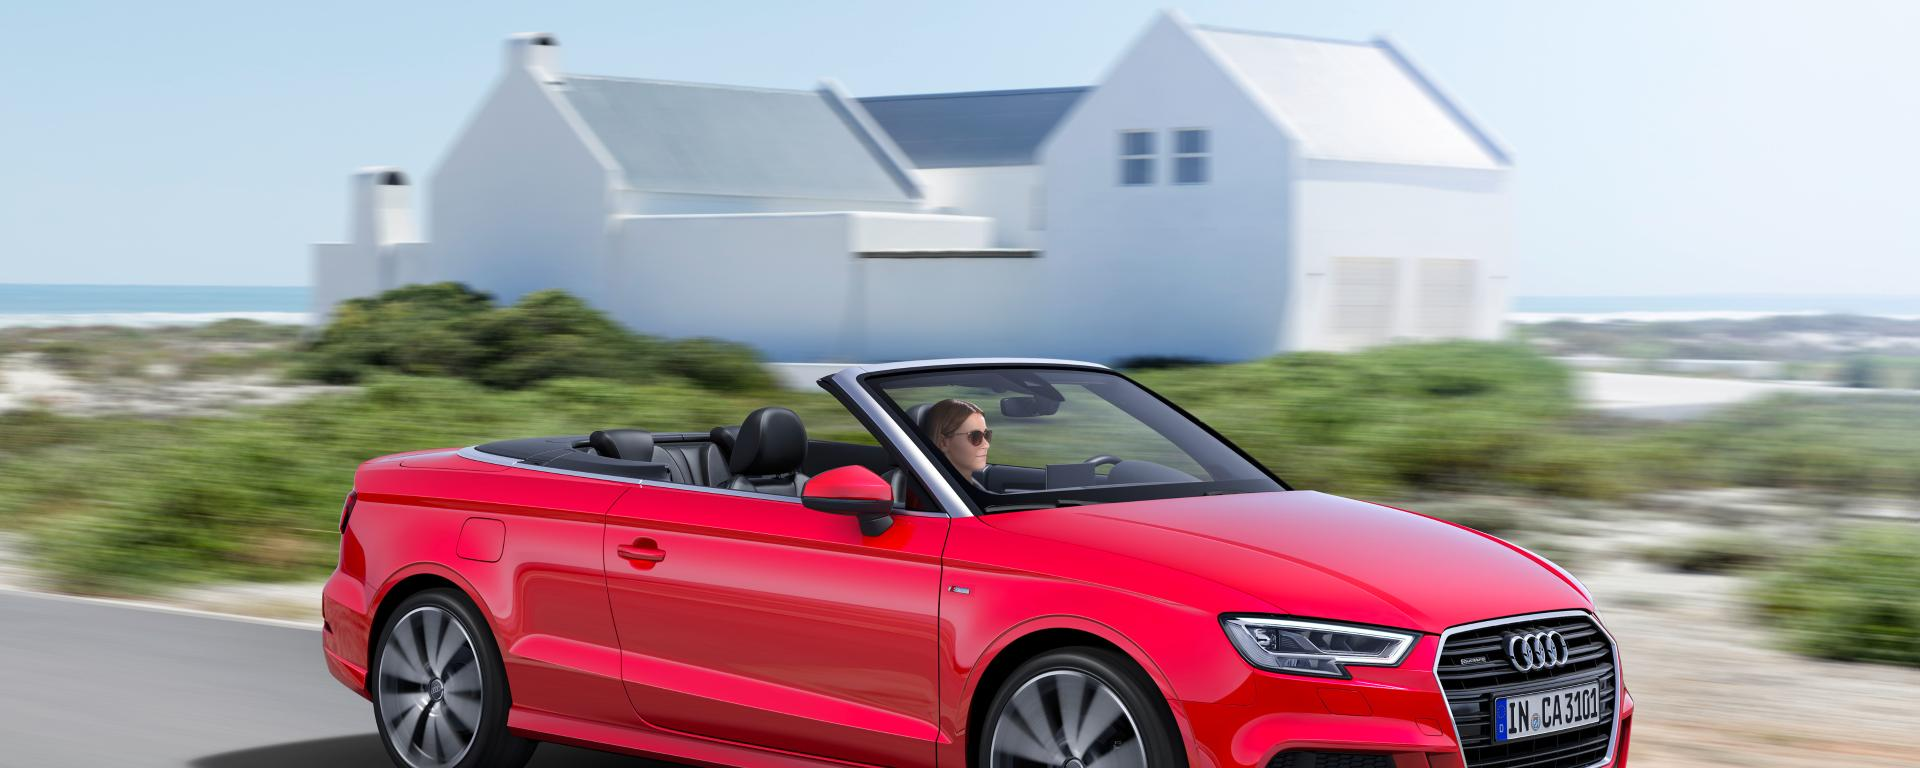 Audi A3 Cabriolet leasen